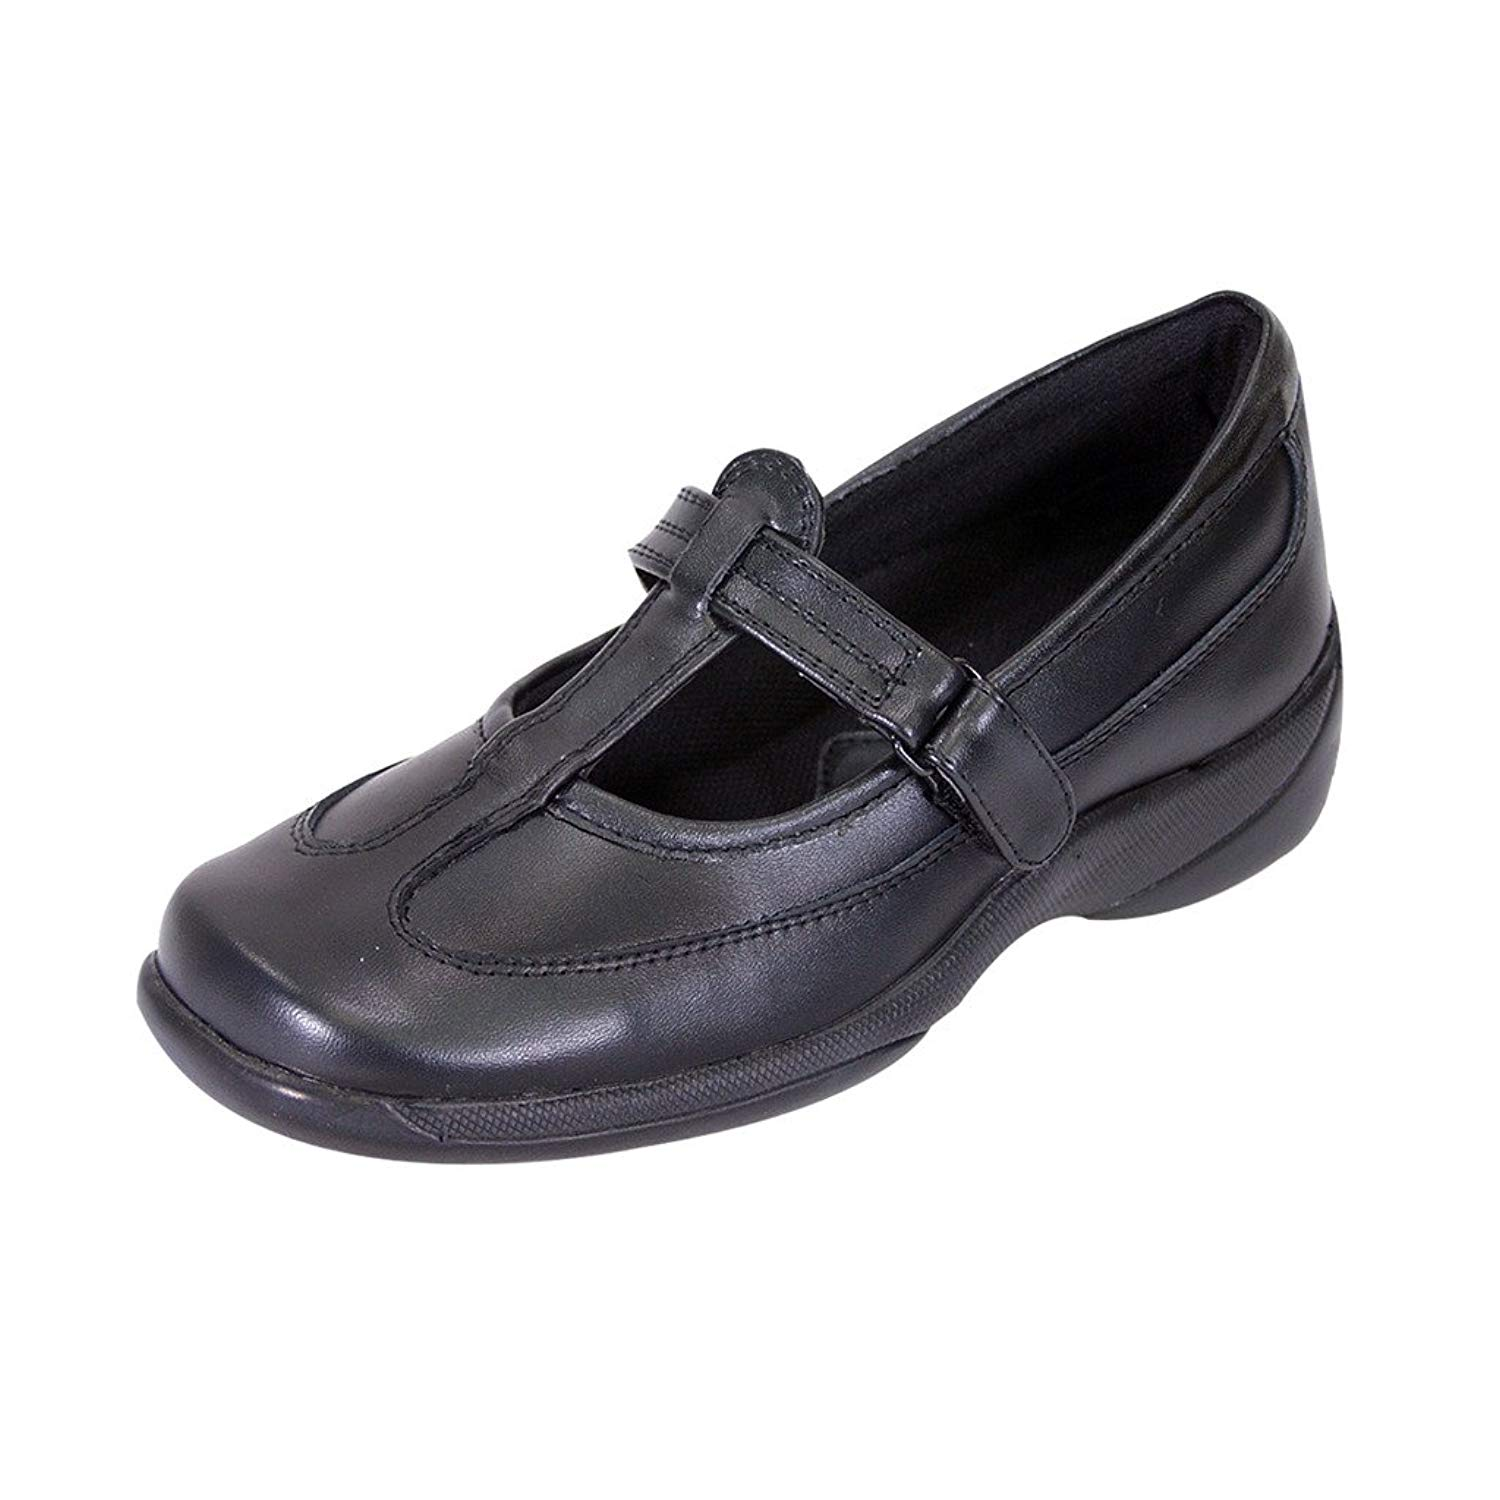 0bf6a6d8c69 Get Quotations · 24 Hour Comfort Renee Women Wide Width Leather Maximum  Traction Comfort Shoes